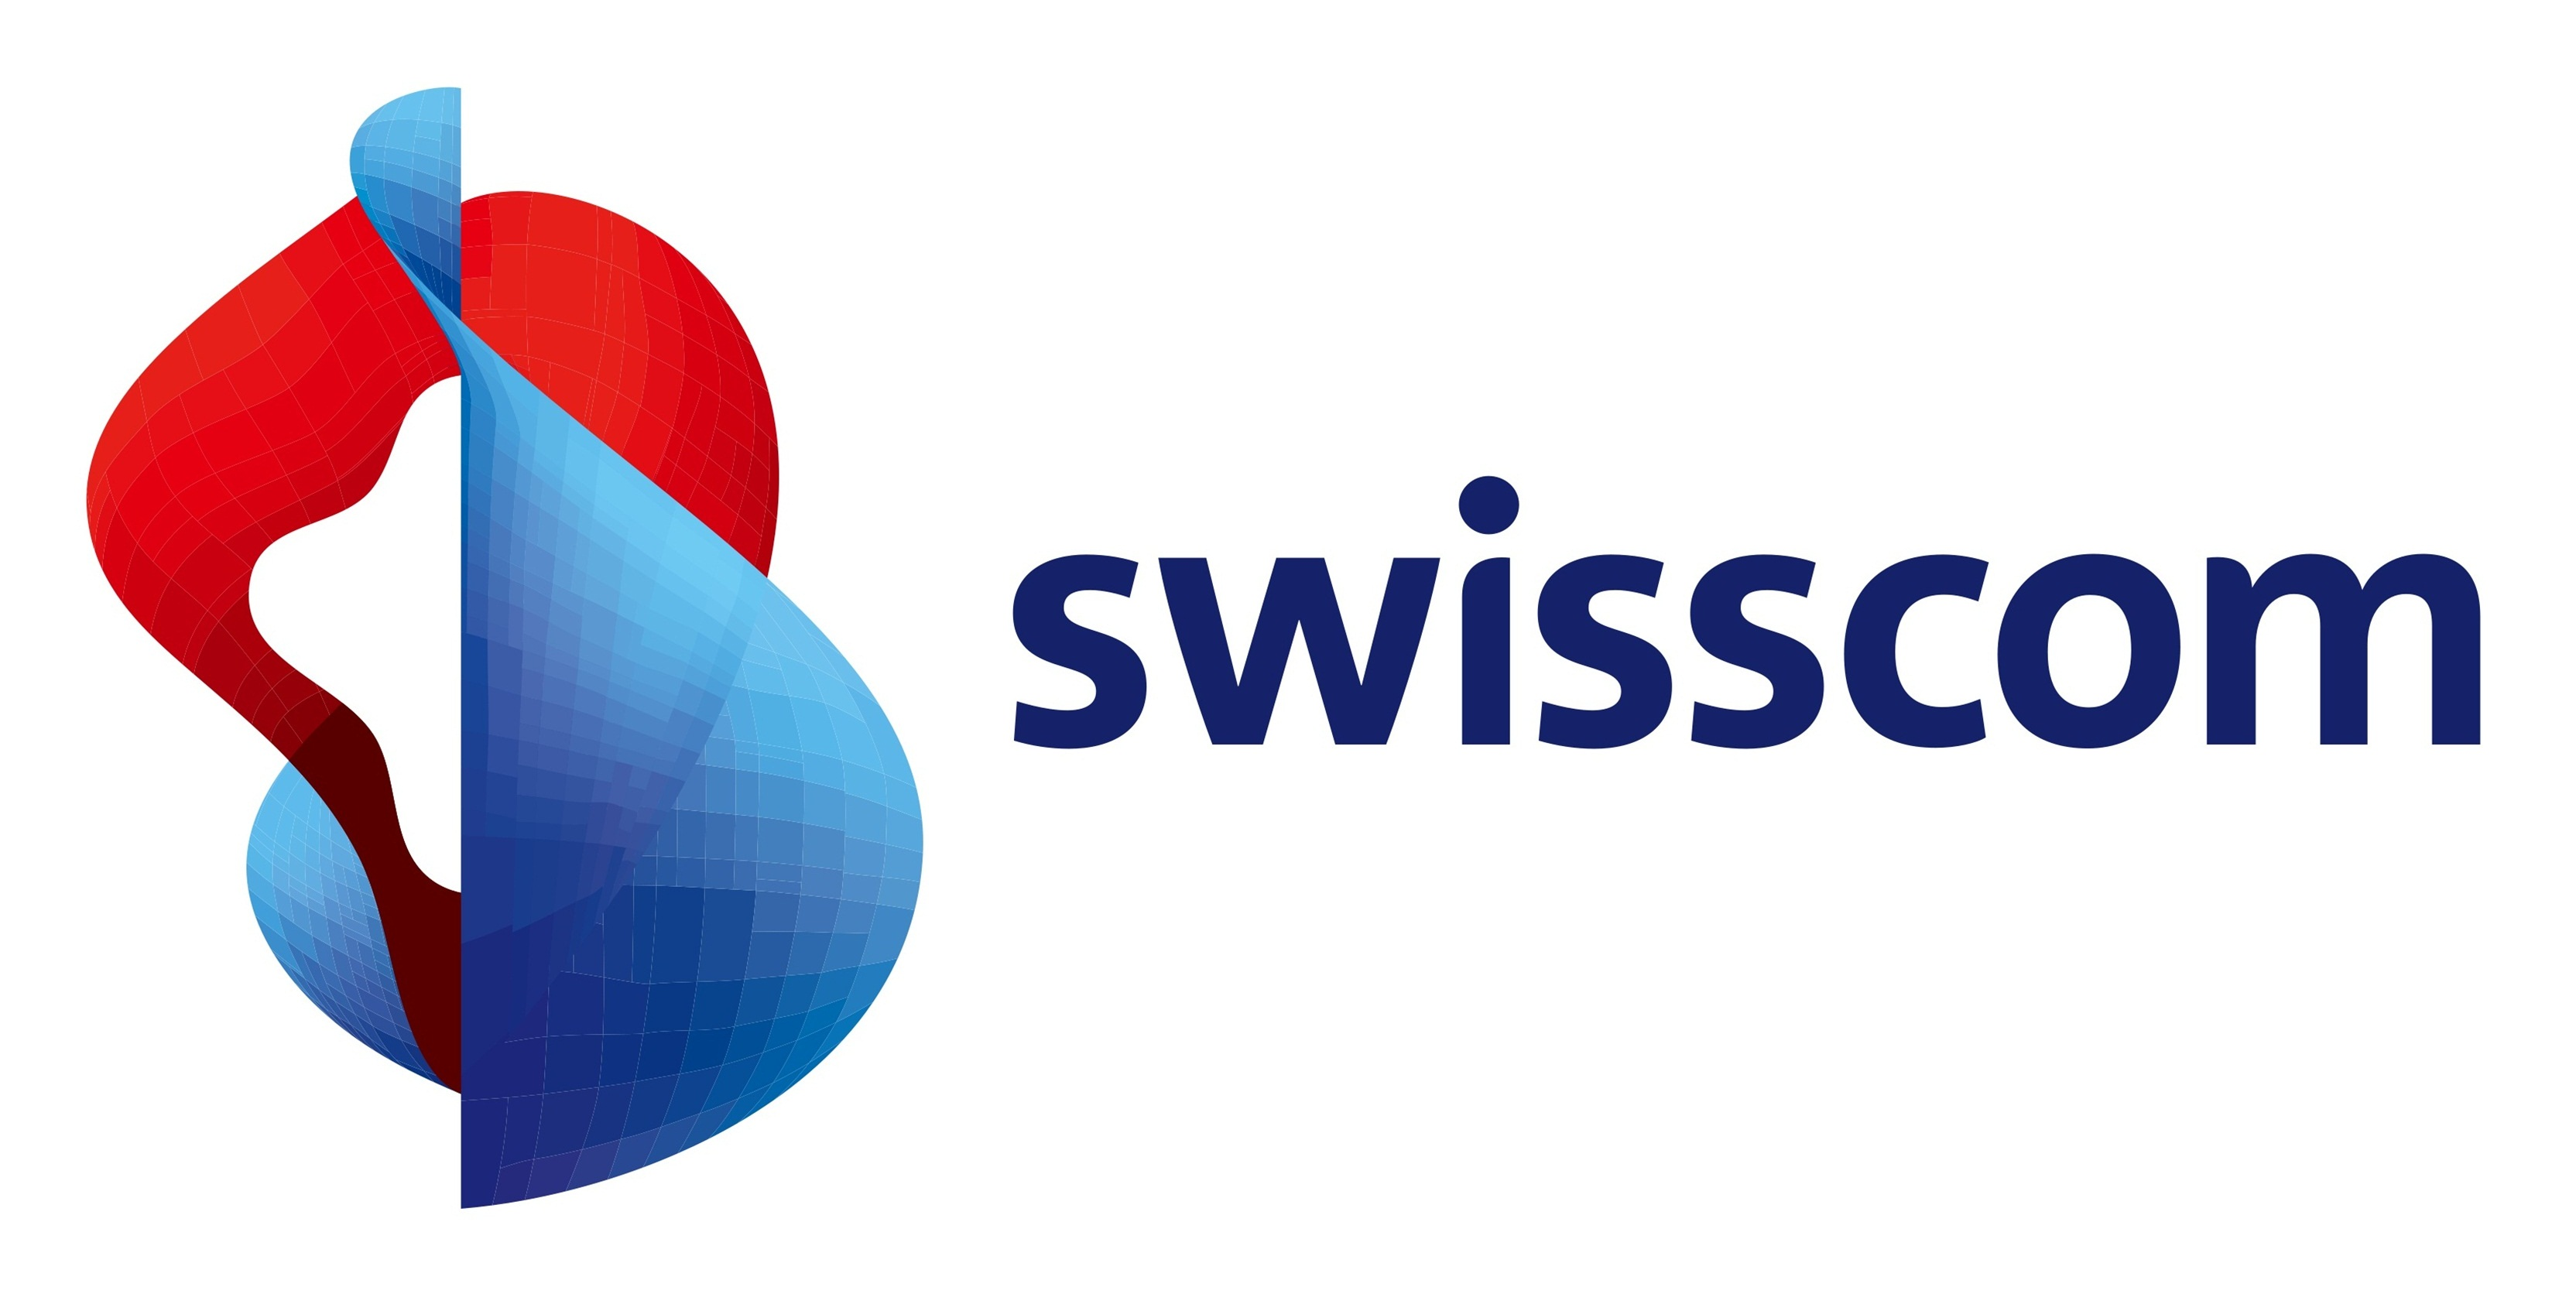 moveguard at Swisscom